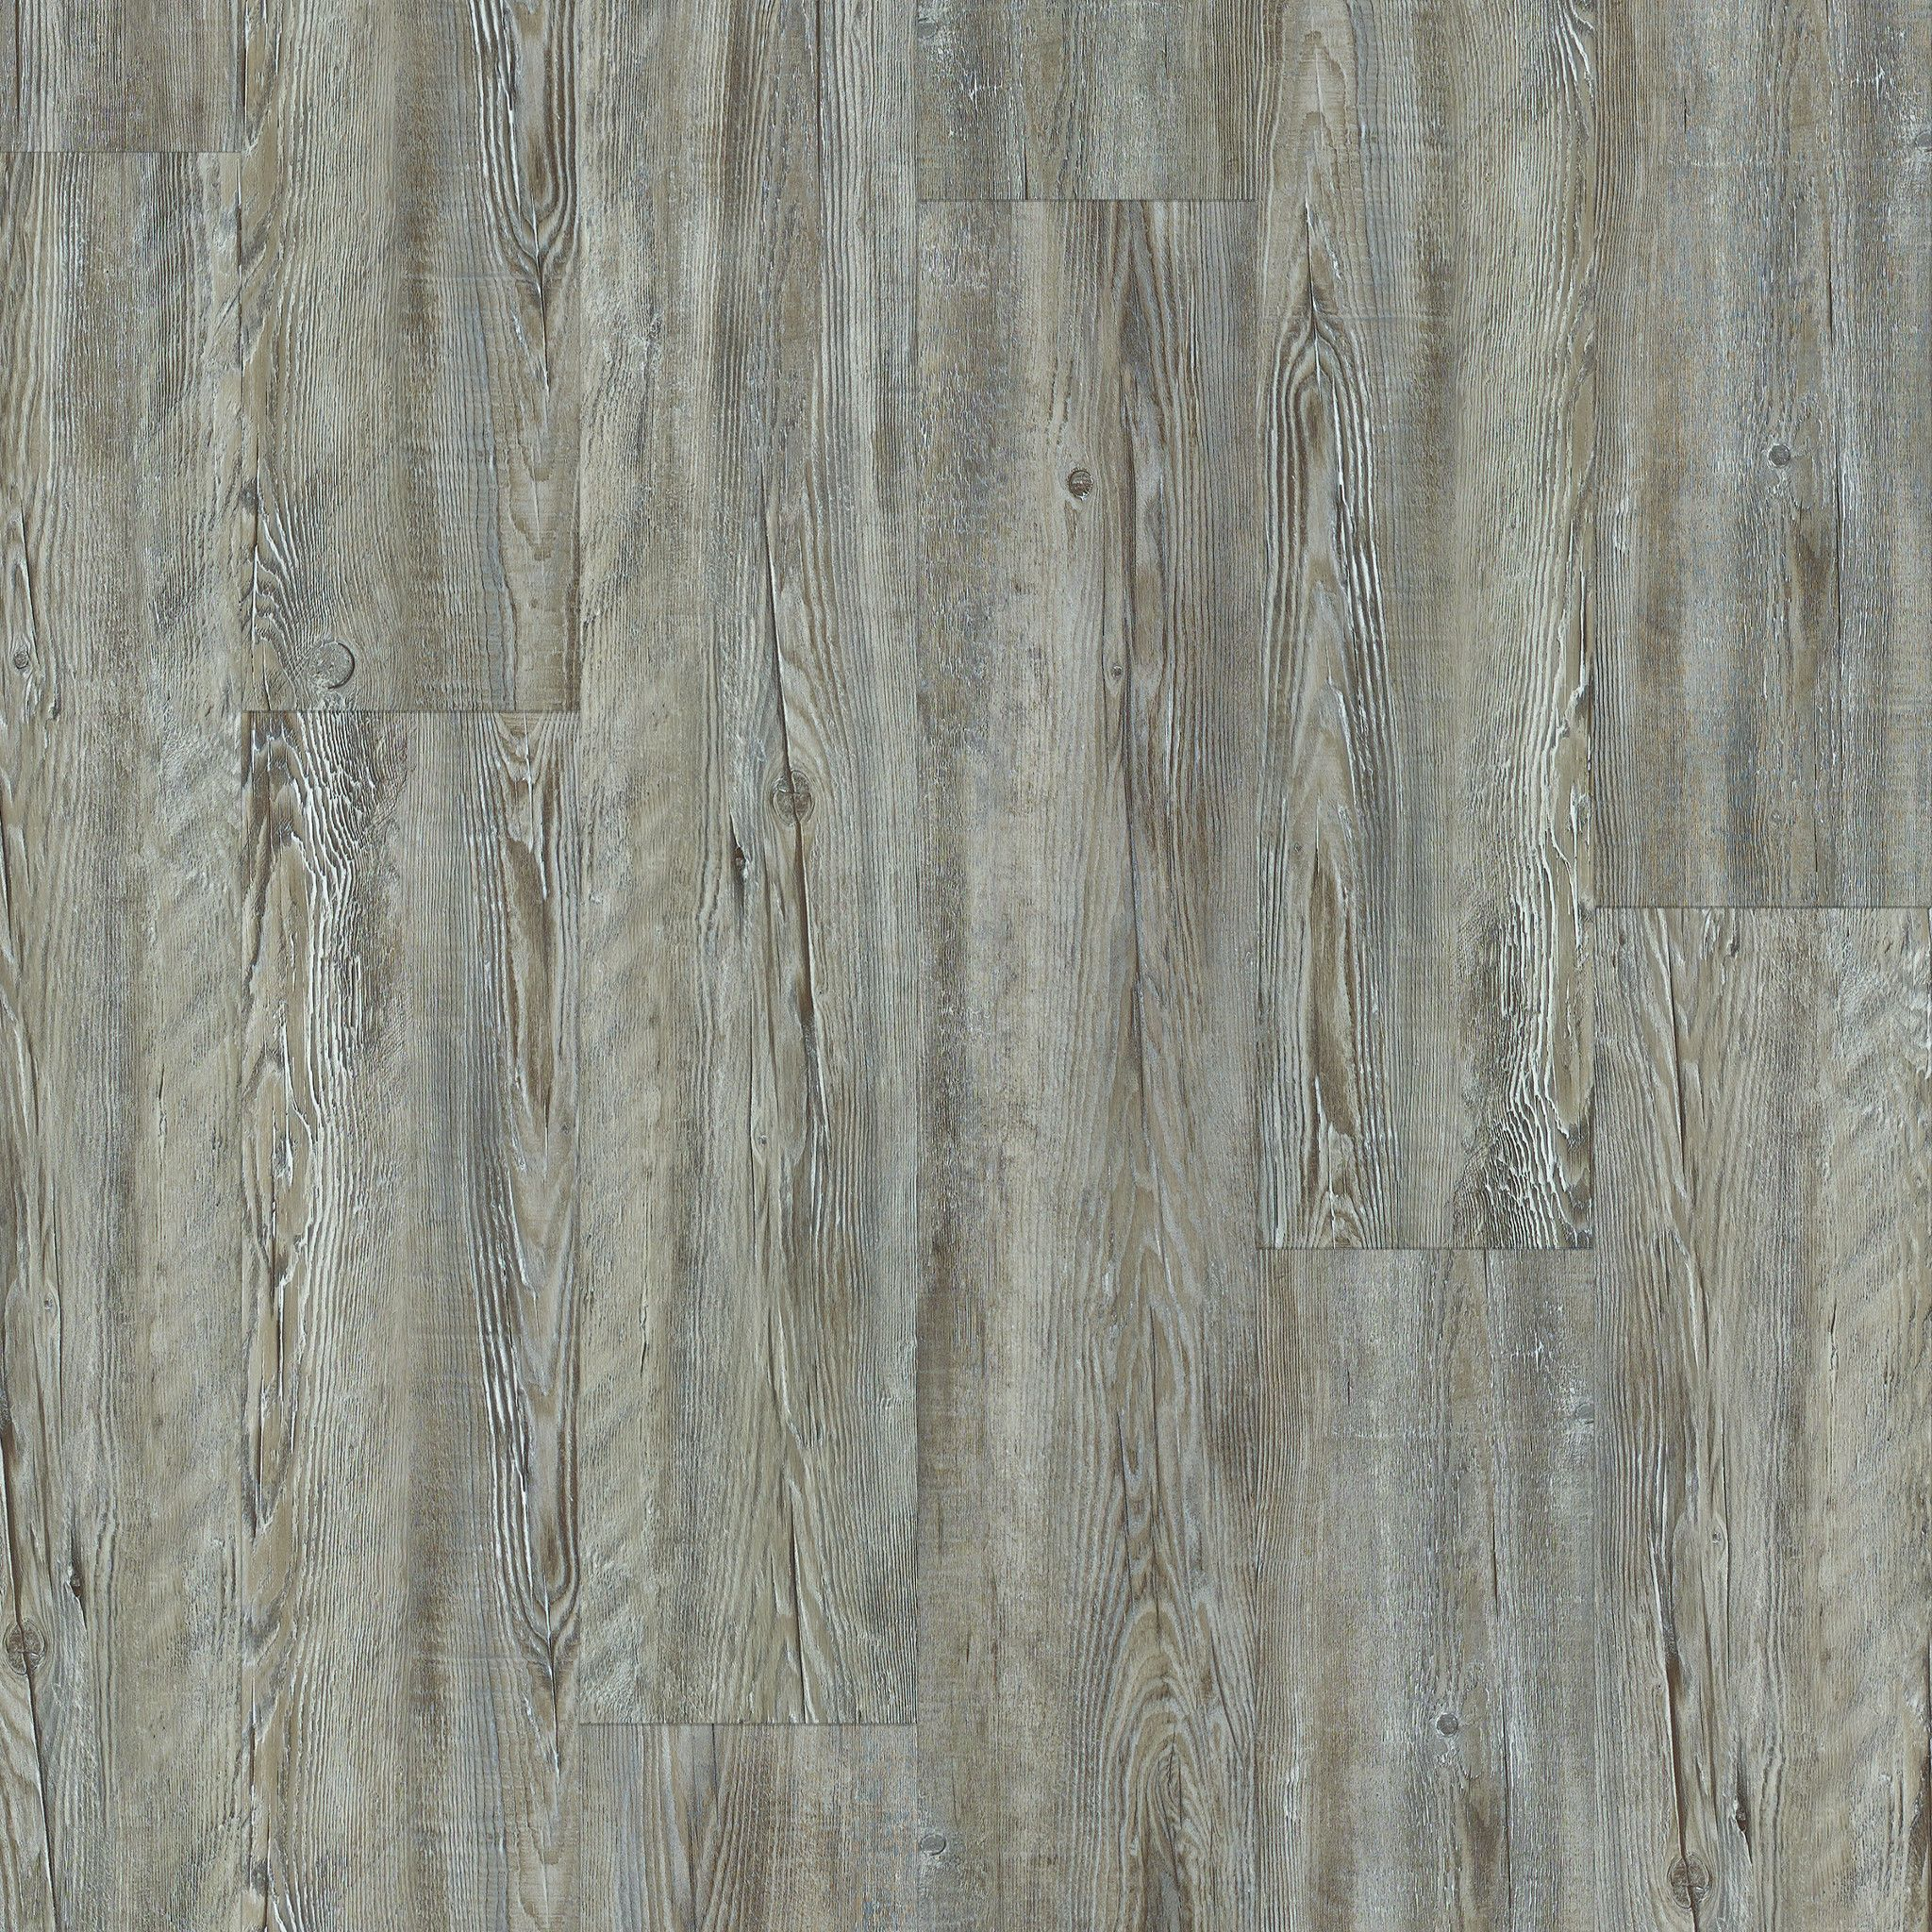 Style name and number: Impact Plus 2031V and color name and number: Weathered Barnwood 00400